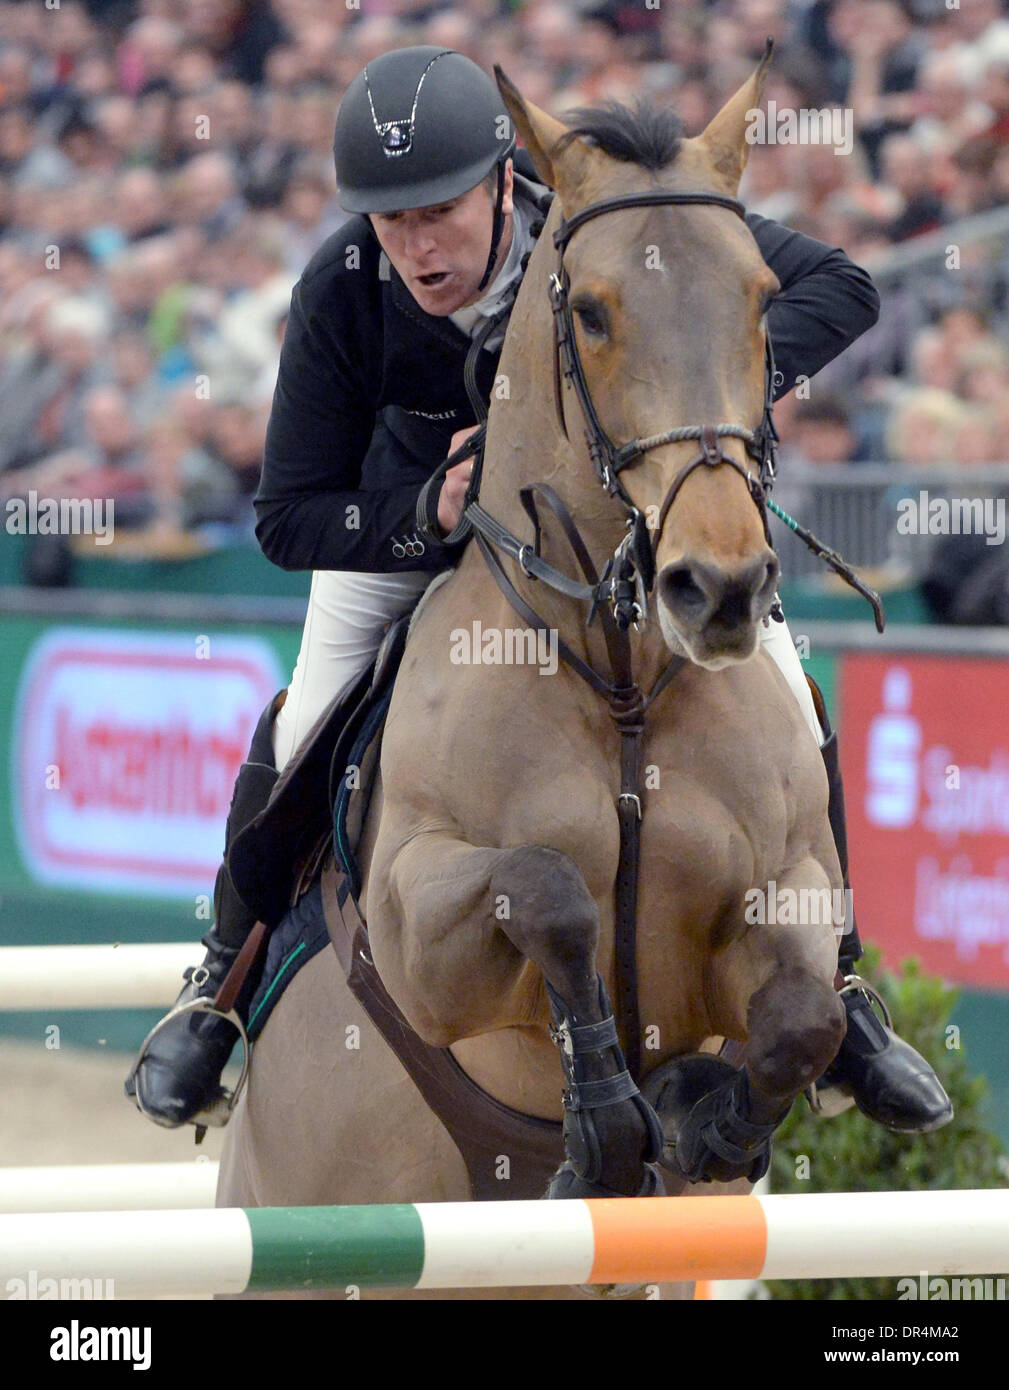 the Messe Leipzig, Germany. 19th Jan, 2014. France's show jumper Roger Yves Bost surmounts an obstacle on his horse Castle Forbes Myrtille Paulois and comes second in the competition during the Show Jumping World Cup at the Messe Leipzig, Germany, 19 January 2014. Photo: Hendrik Schmidt/dpa/Alamy Live News - Stock Image